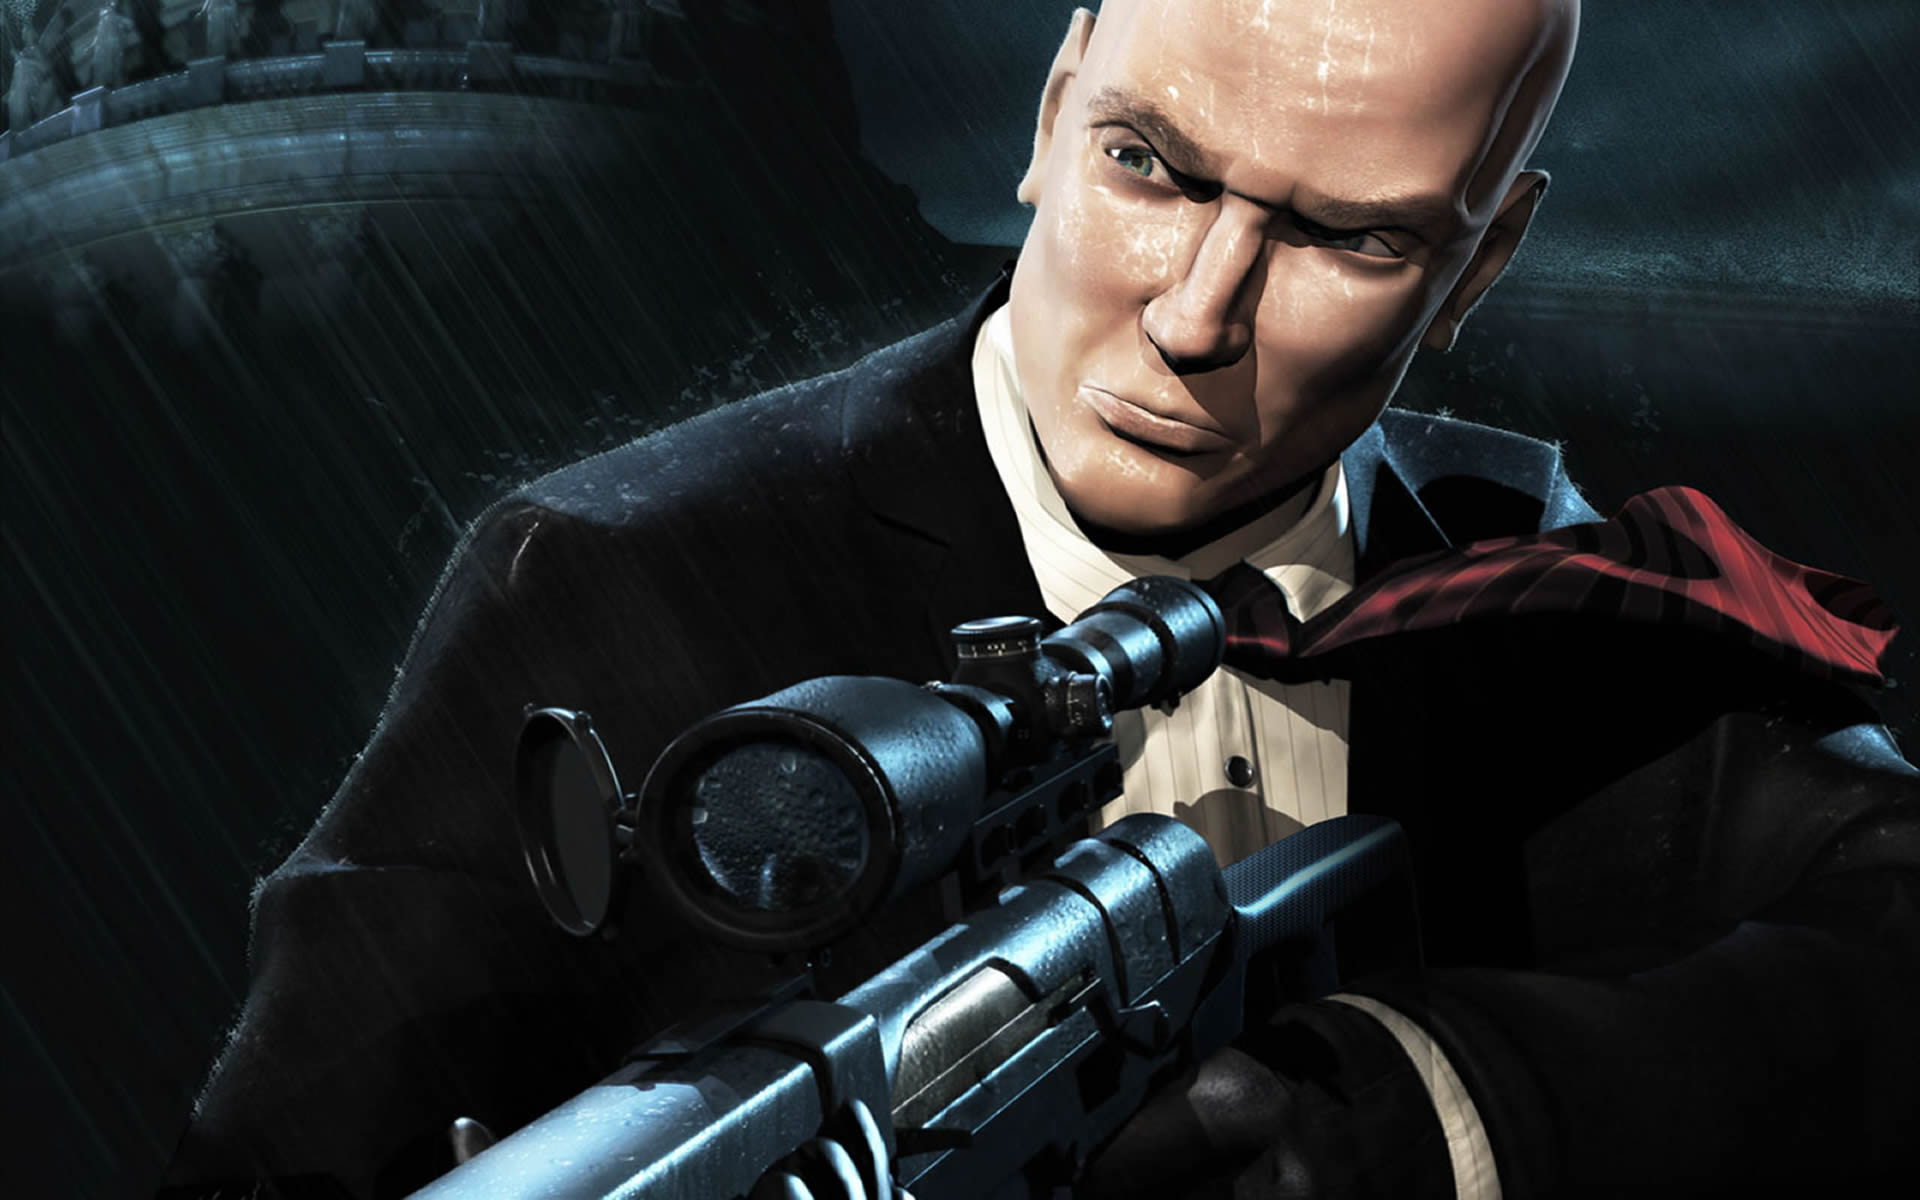 Agent 47 With Sniper Rifle Hitman 2 Wallpaper